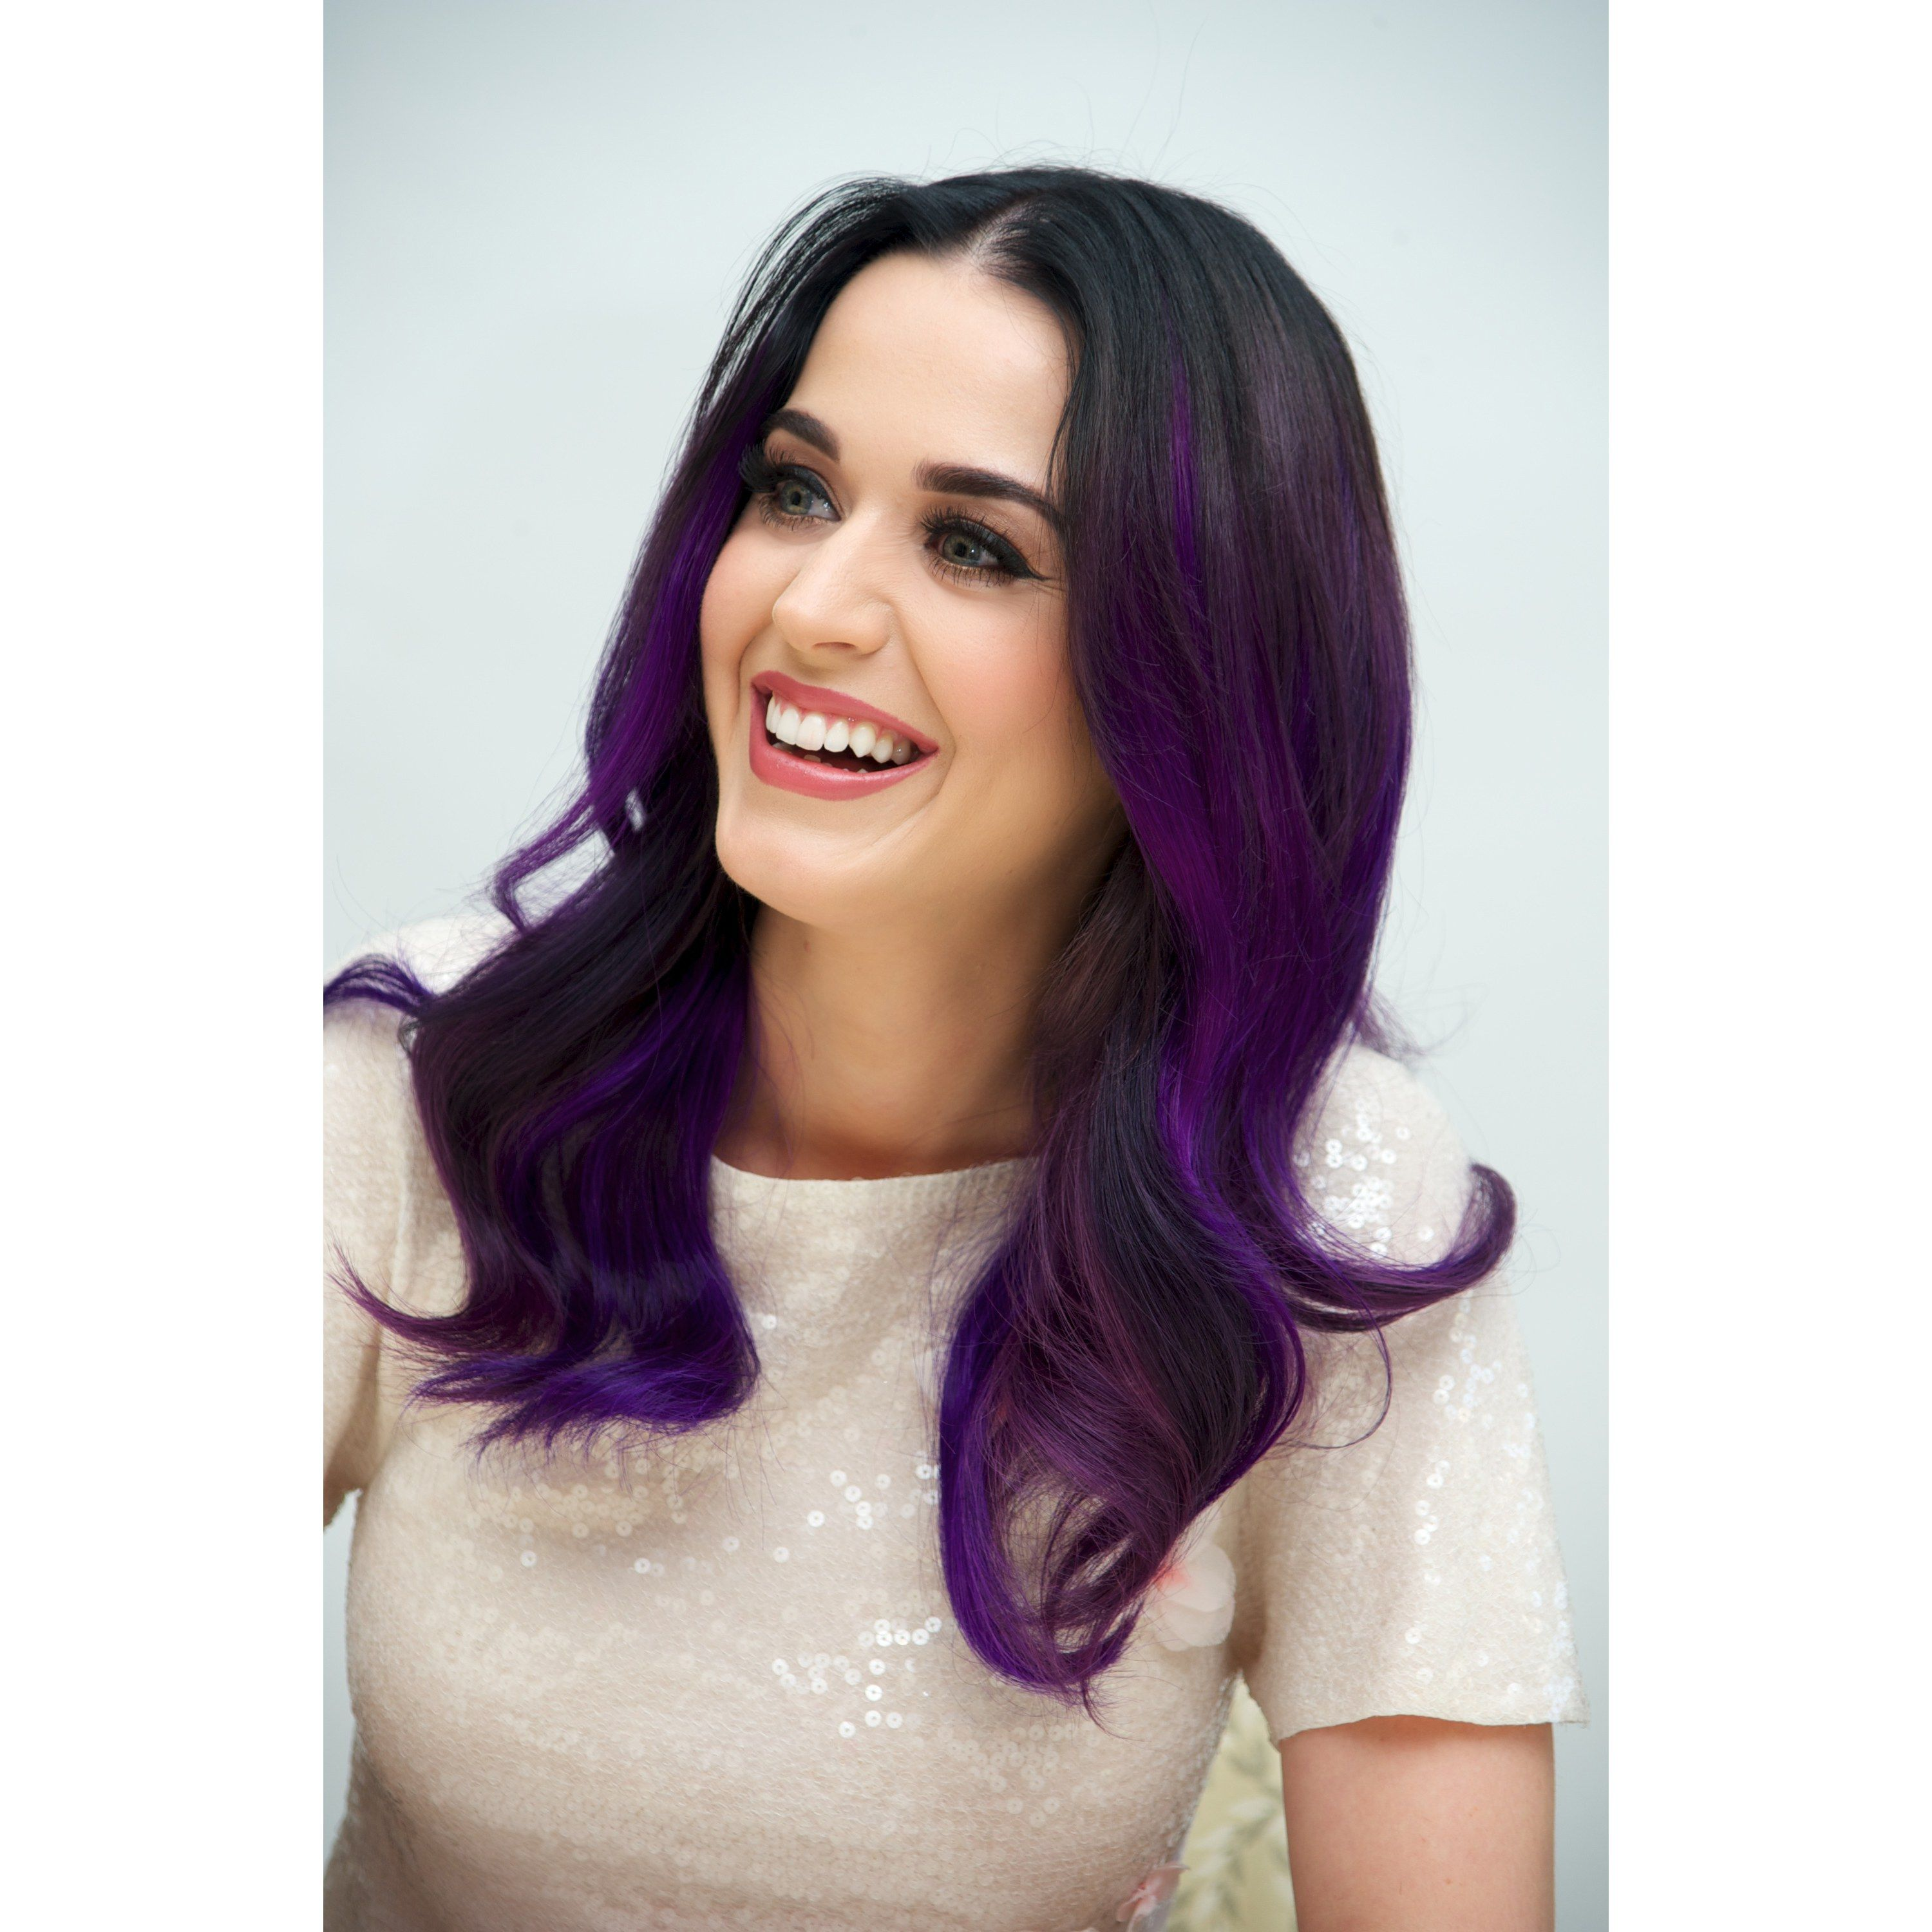 Katy perry hair color 2018